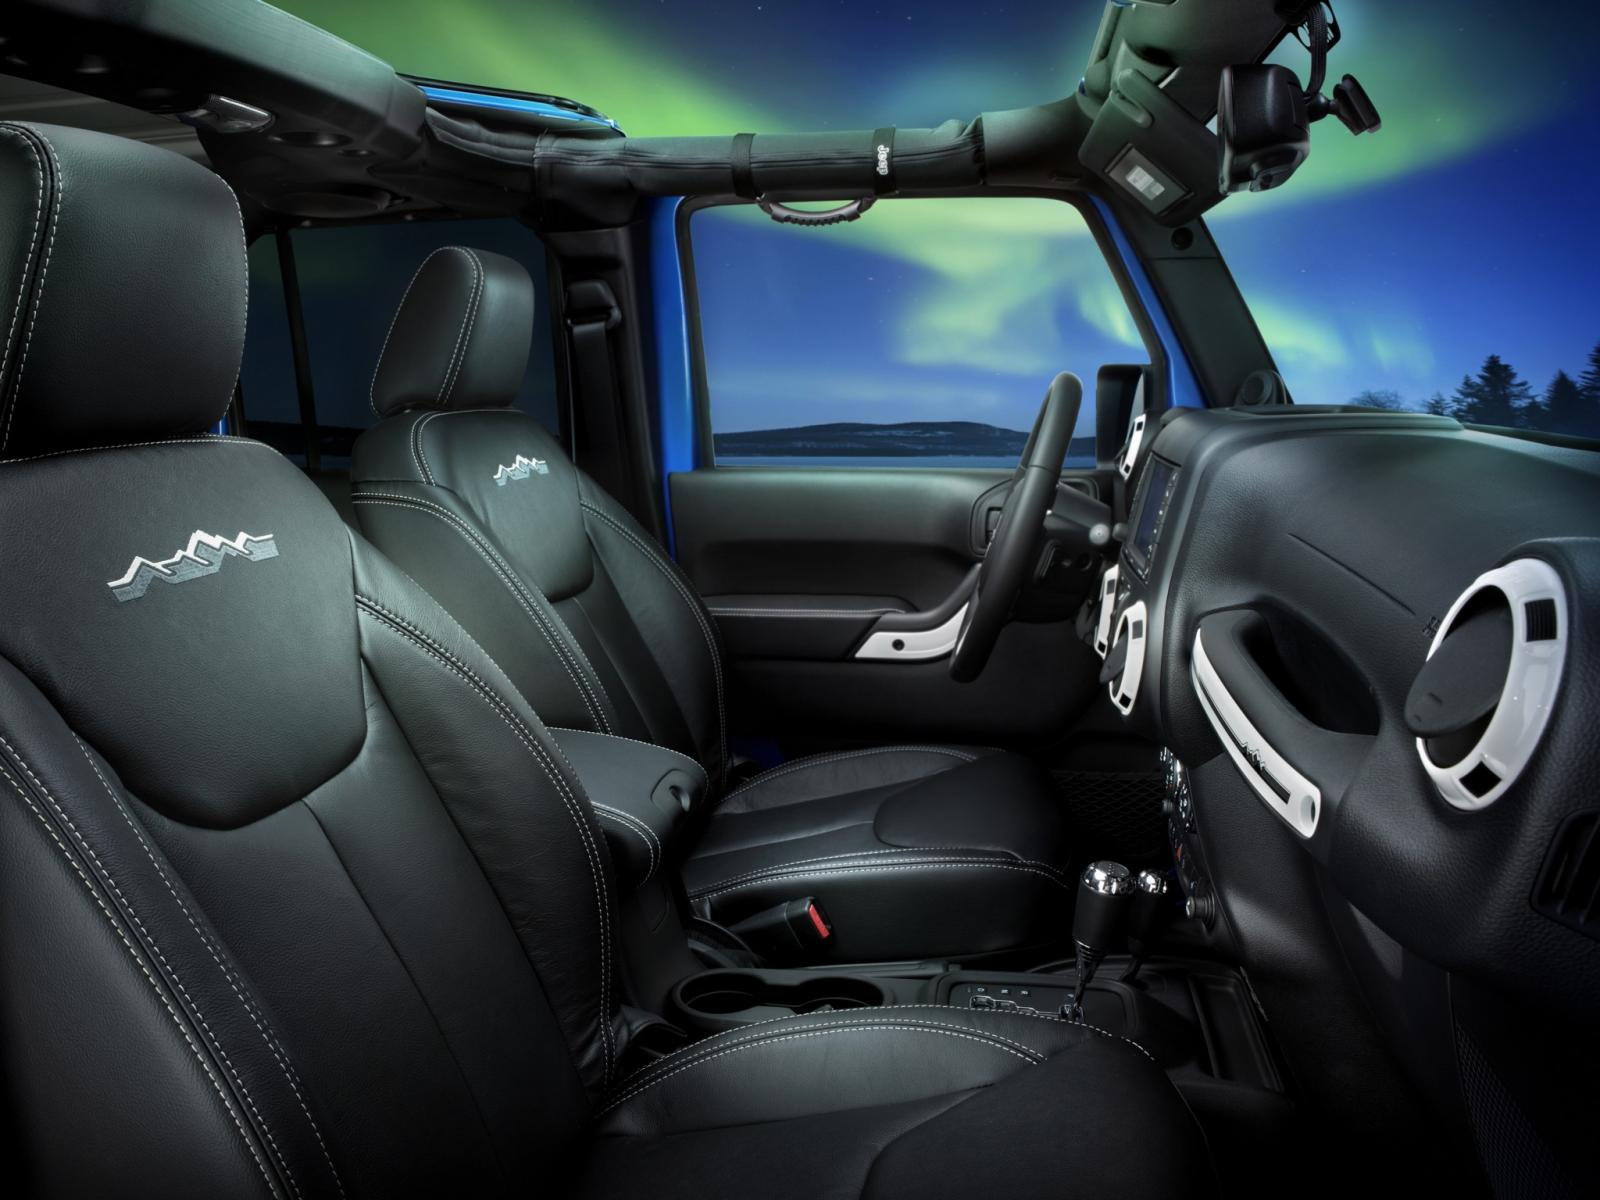 2013 Jeep Wrangler Polar Limited Edition | Top Speed. »